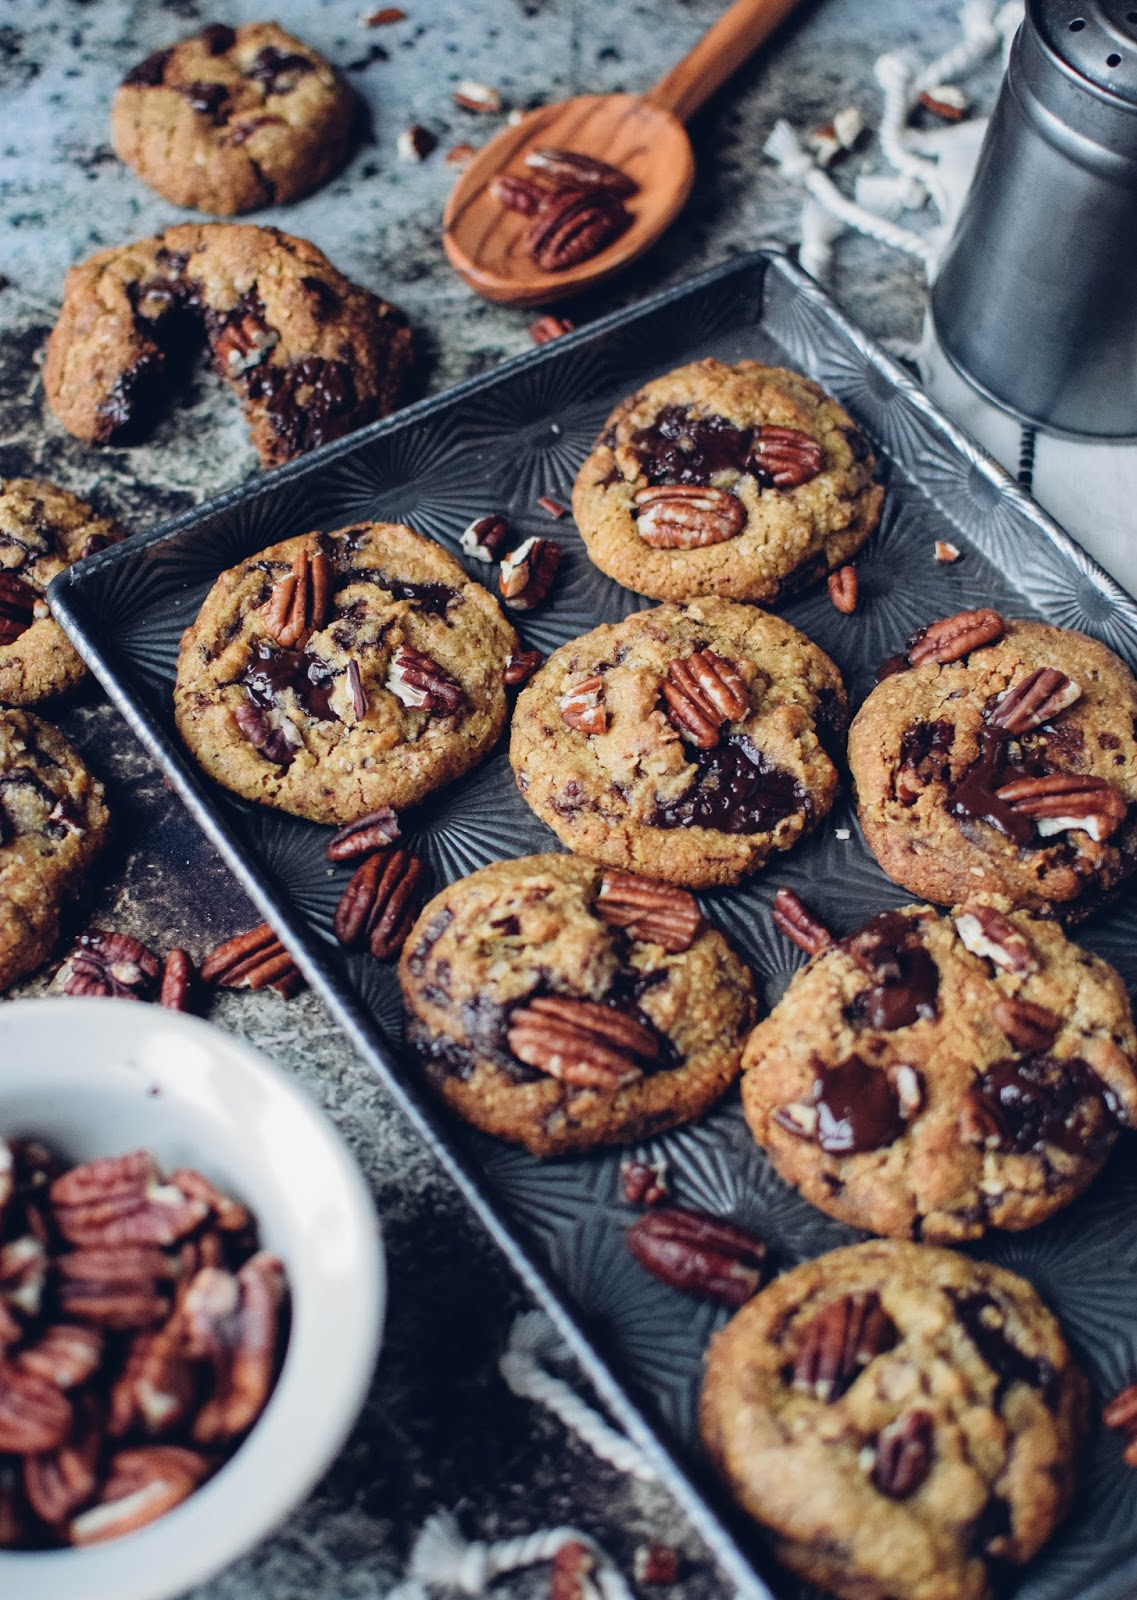 These chocolate chip cookies use ground pecans and coconut in the flour mixture and the darkest chocolate to give them a deep, sophisticated taste, this is a cookie for the adults. No kids allowed. Unless they've been really good...